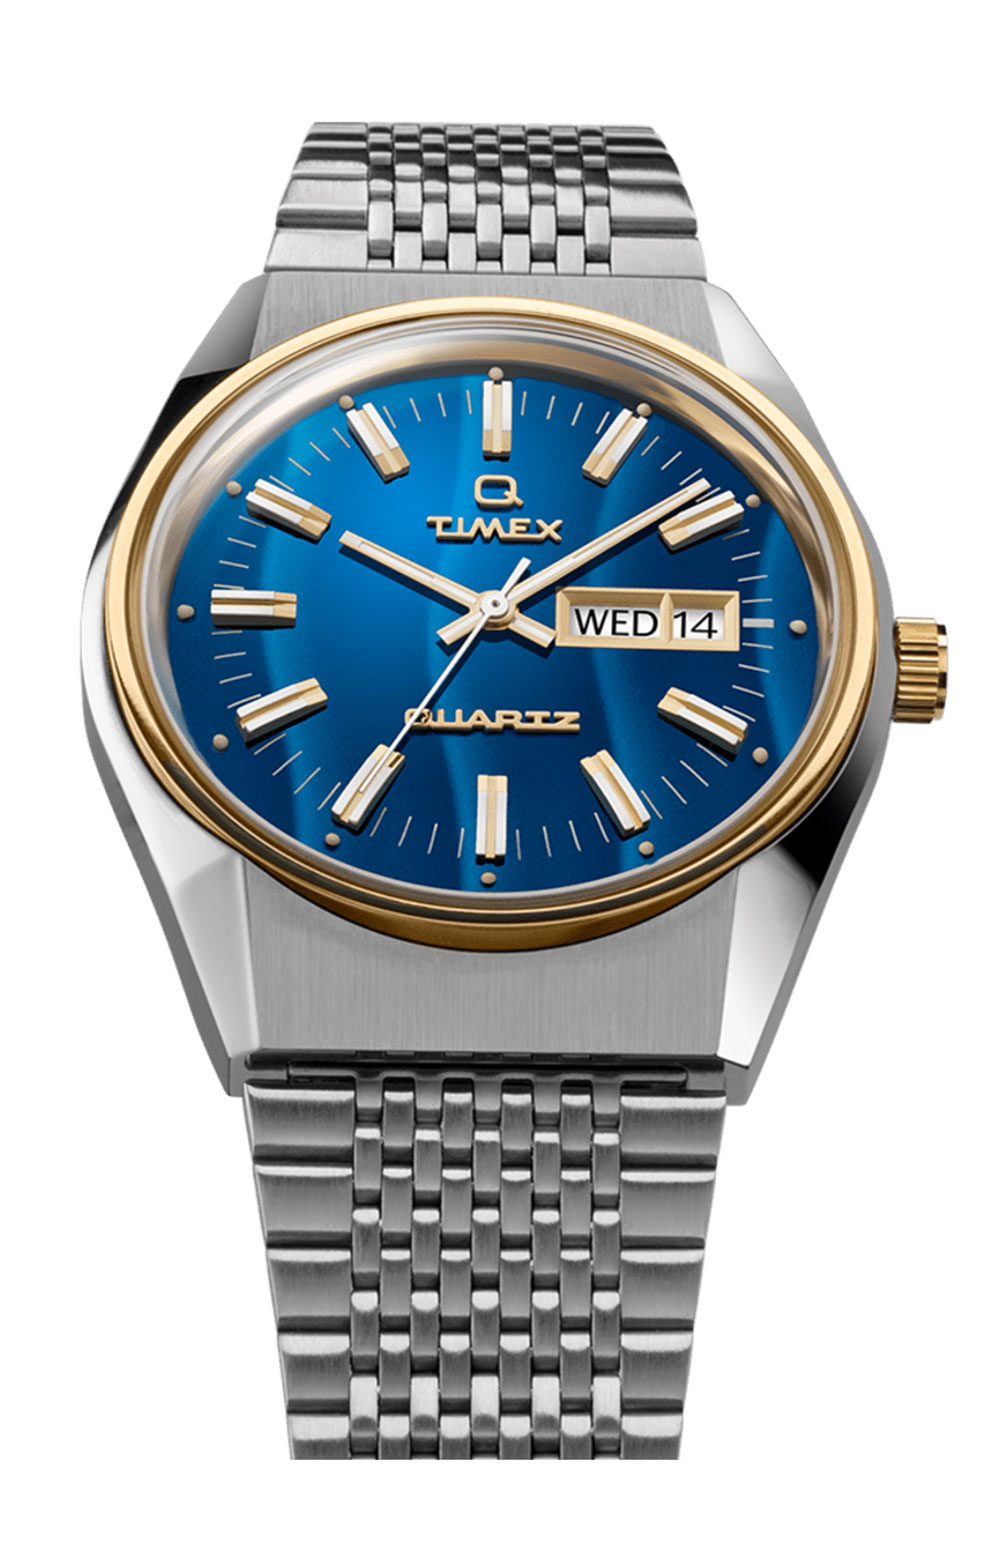 (TW2T80800ZV) Q Timex Reissue Falcon Eye 38mm Stainless Steel Bracelet Watch - Stainless Stee 5